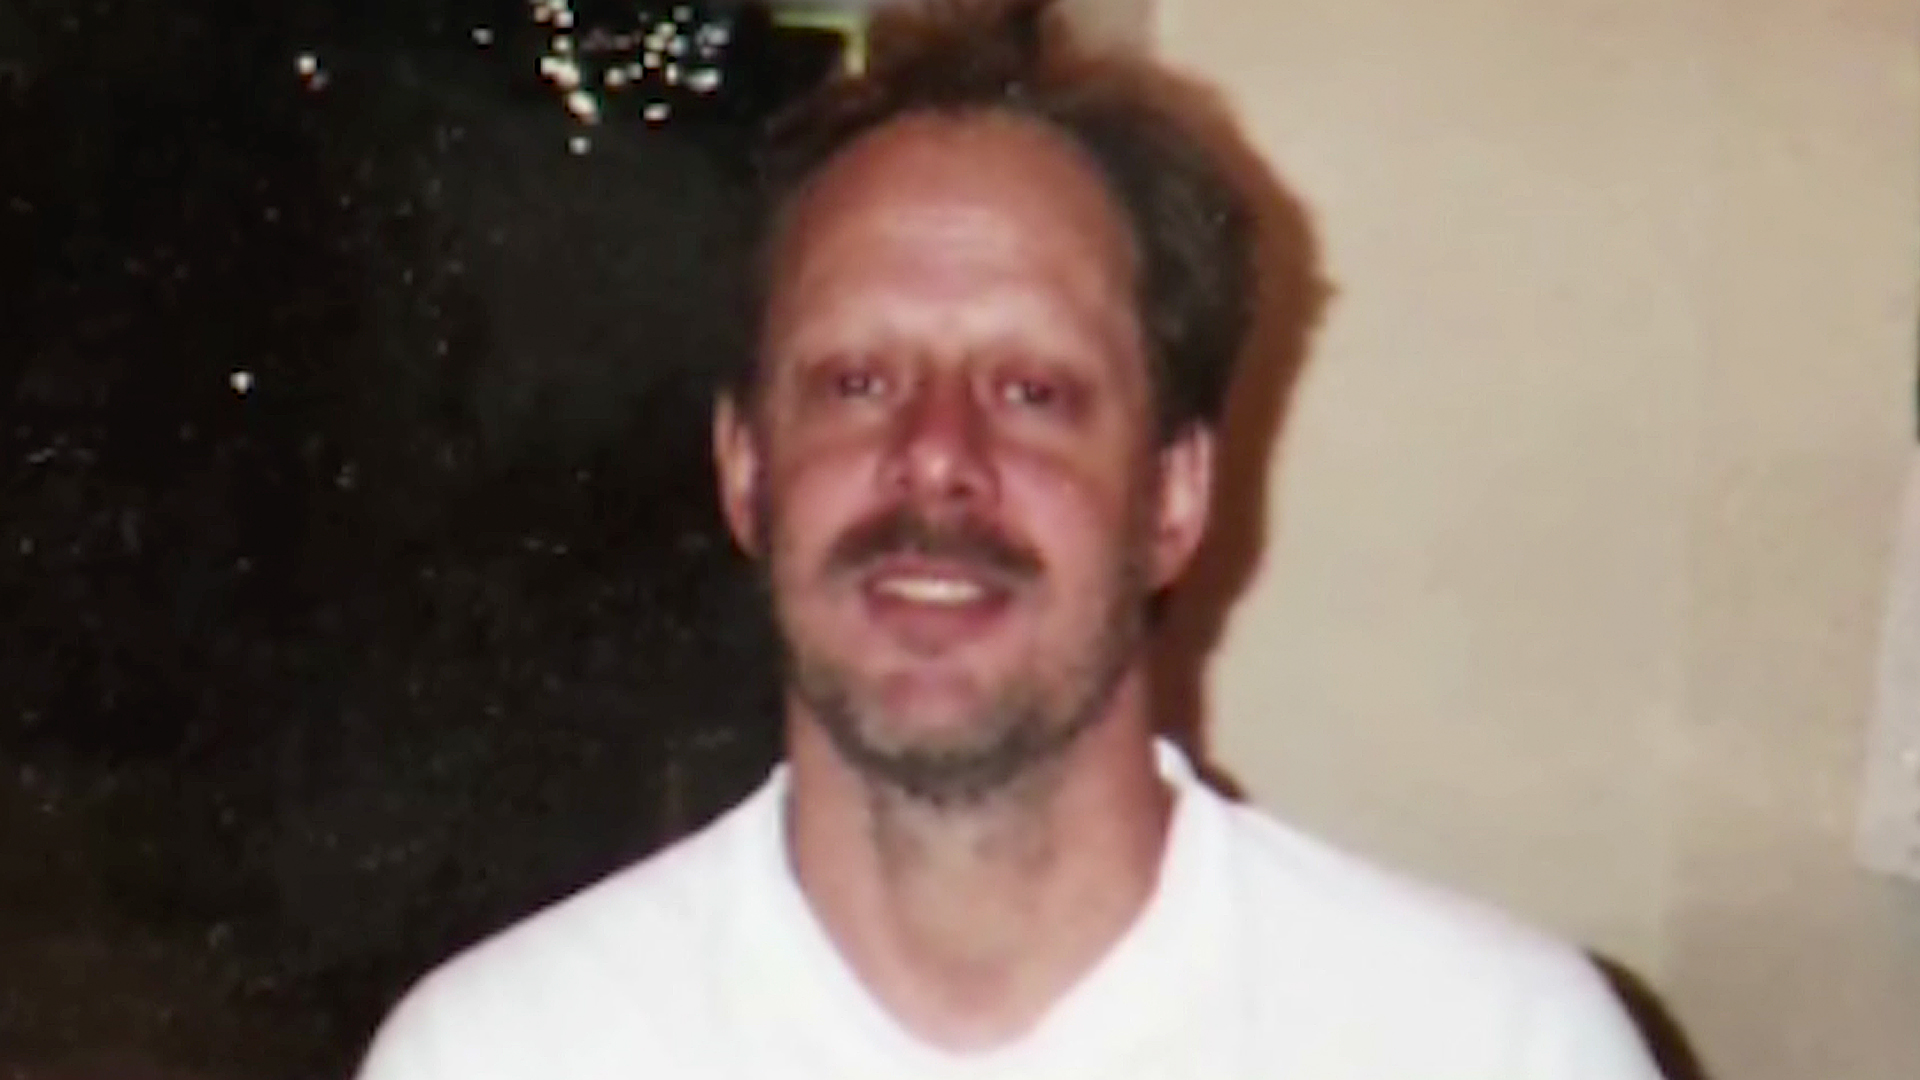 Stephen Paddock is seen in an image provided by CNN.